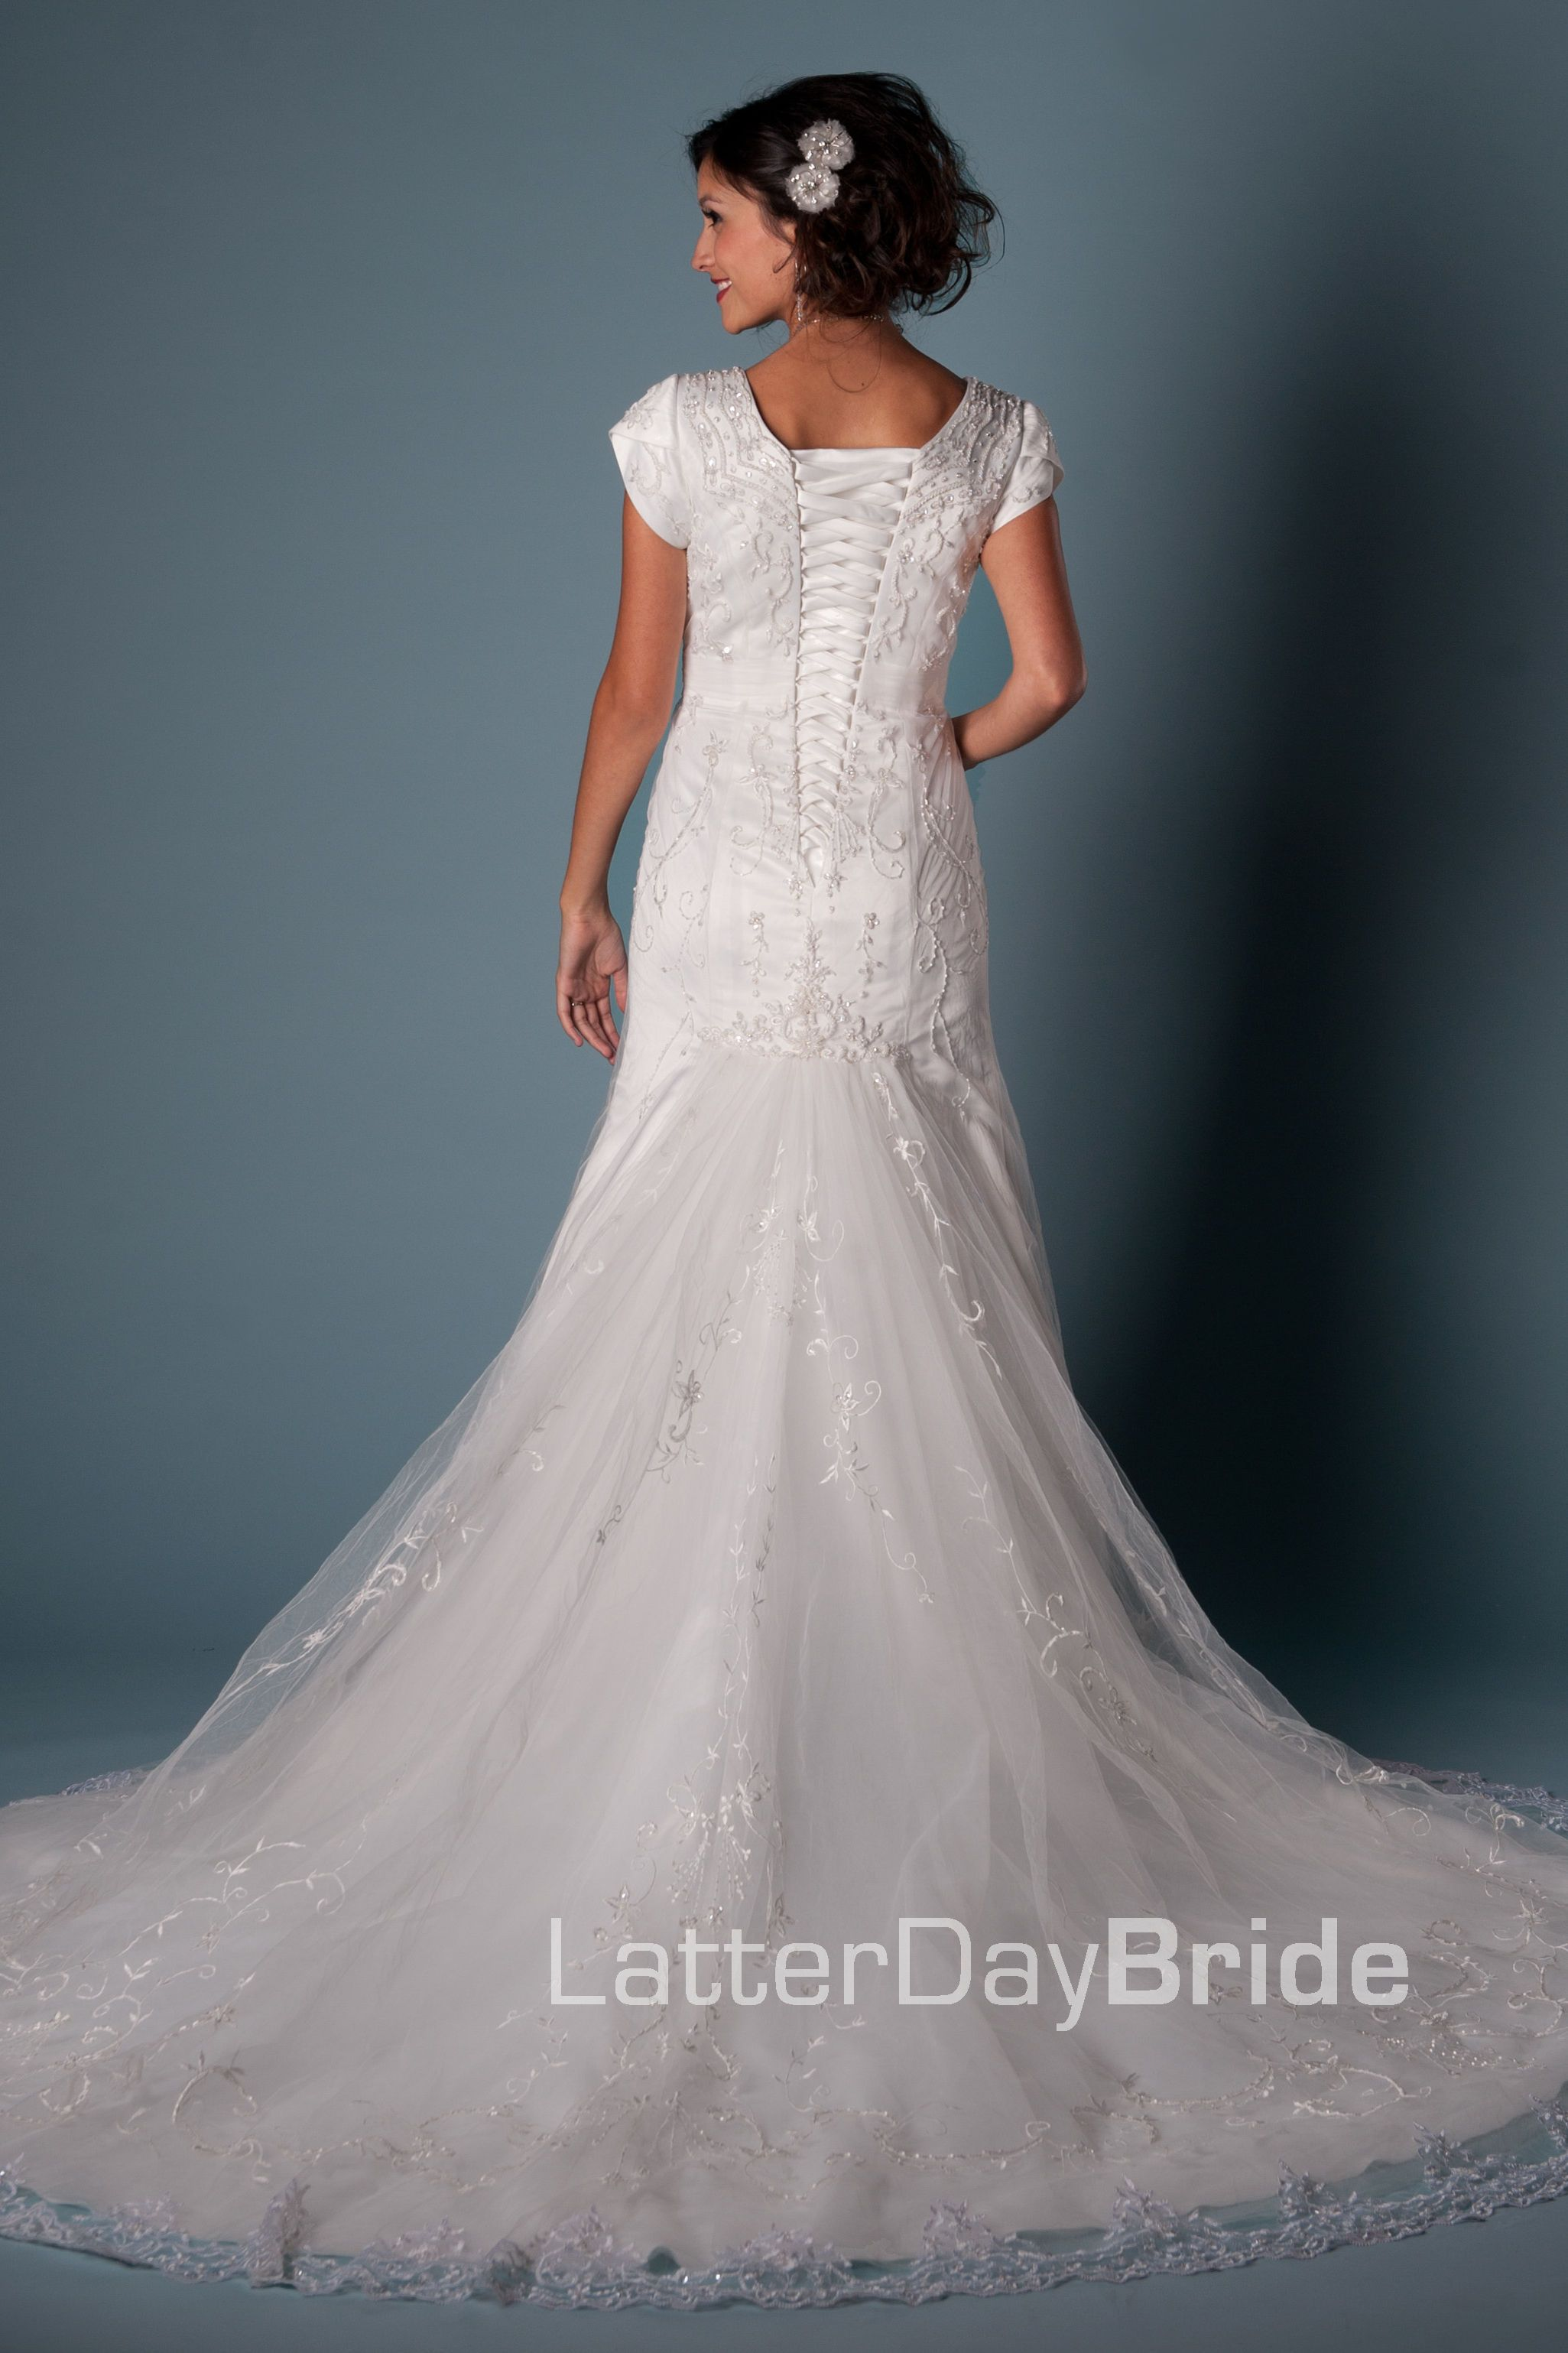 Wedding dresses spokane  Modest Wedding Dress Maxwell  LatterDayBride u Prom Modest Mormon